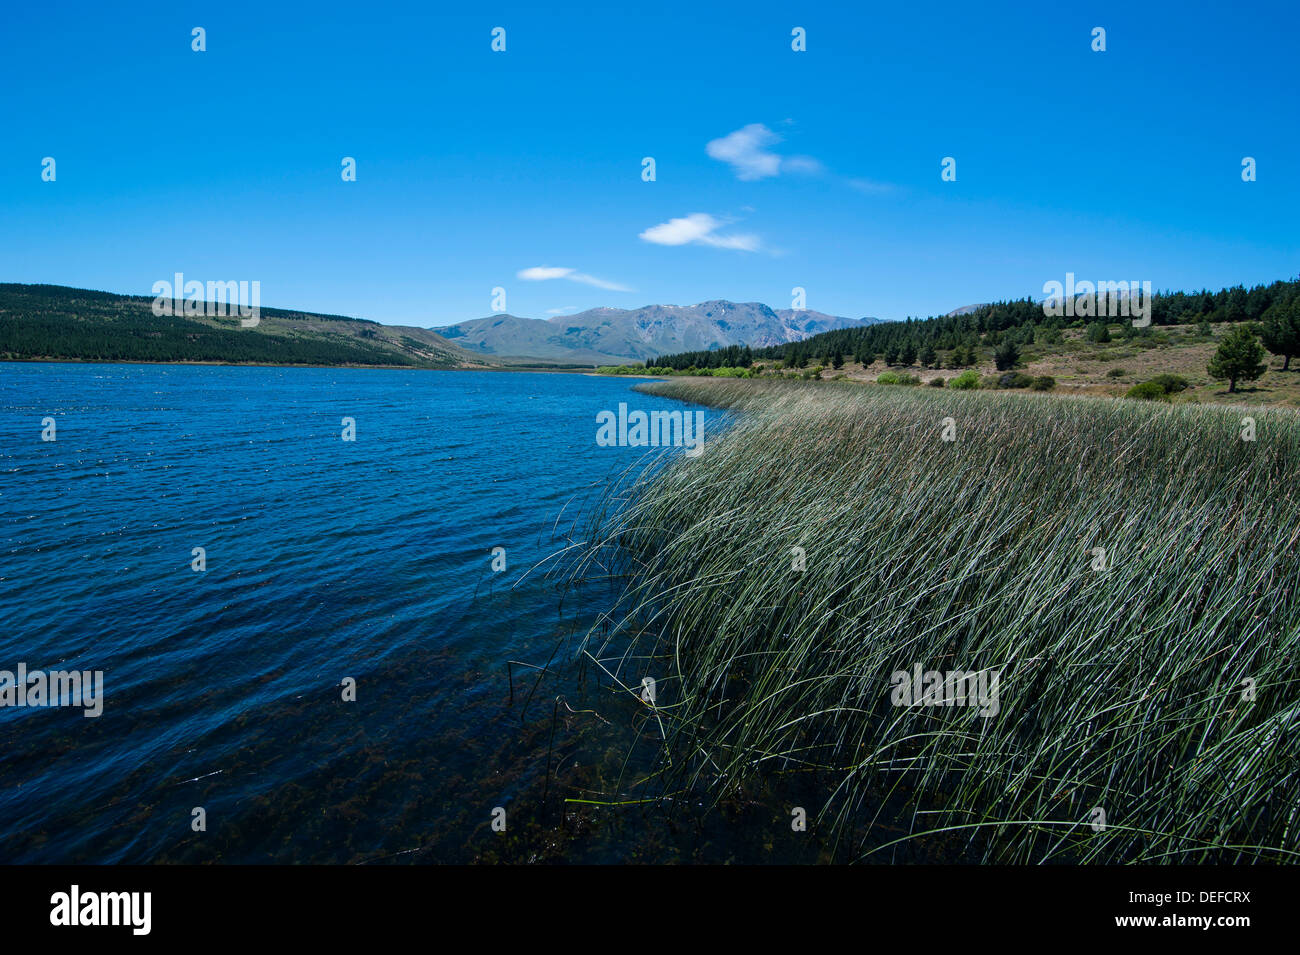 Lake above Esquel, Chubut, Patagonia, Argentina, South America - Stock Image